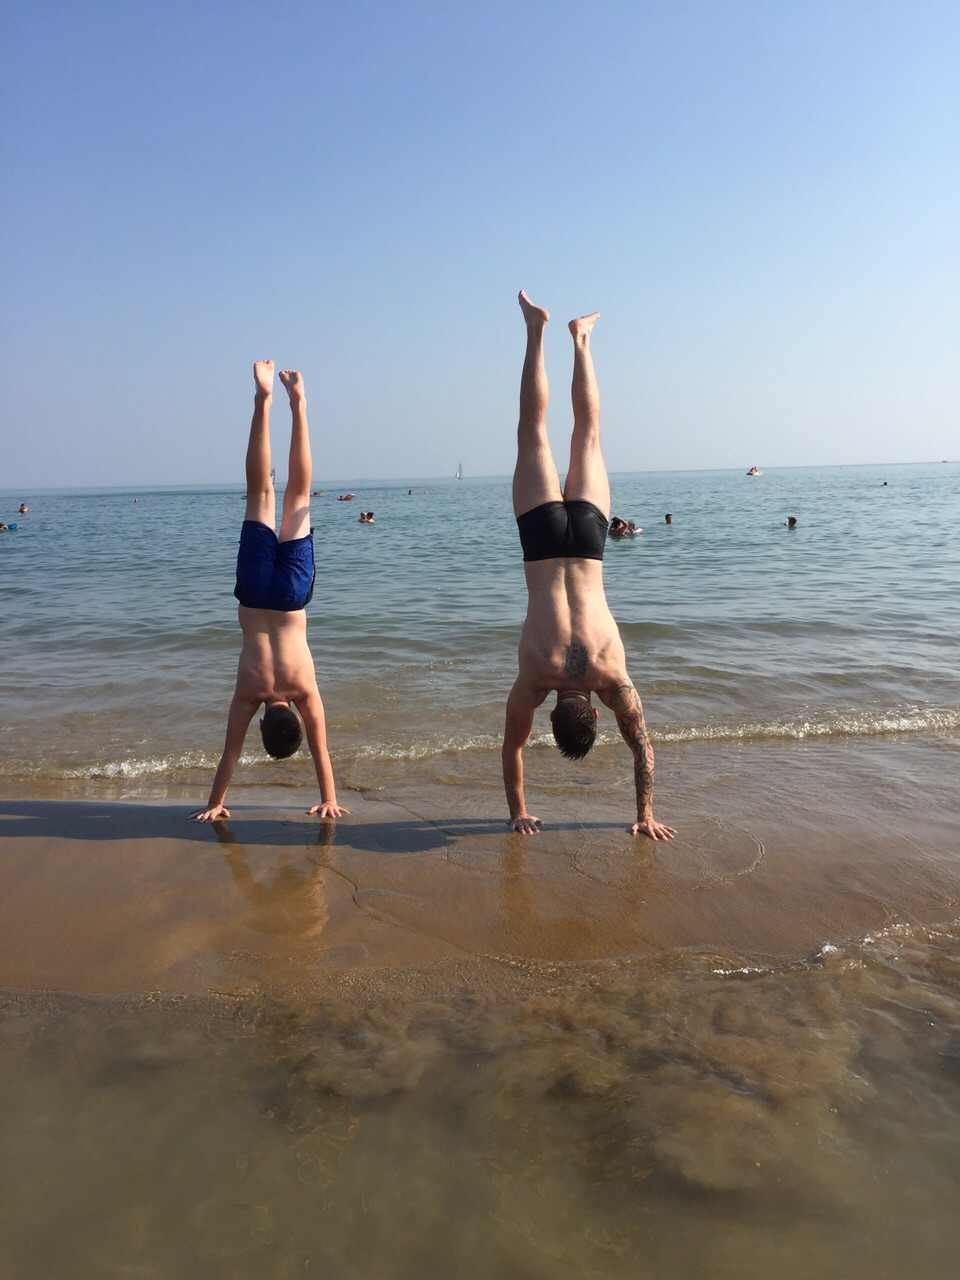 CF1864's resident Father & Son Dream Team, Luke and Luca practicing their handstands on the beach